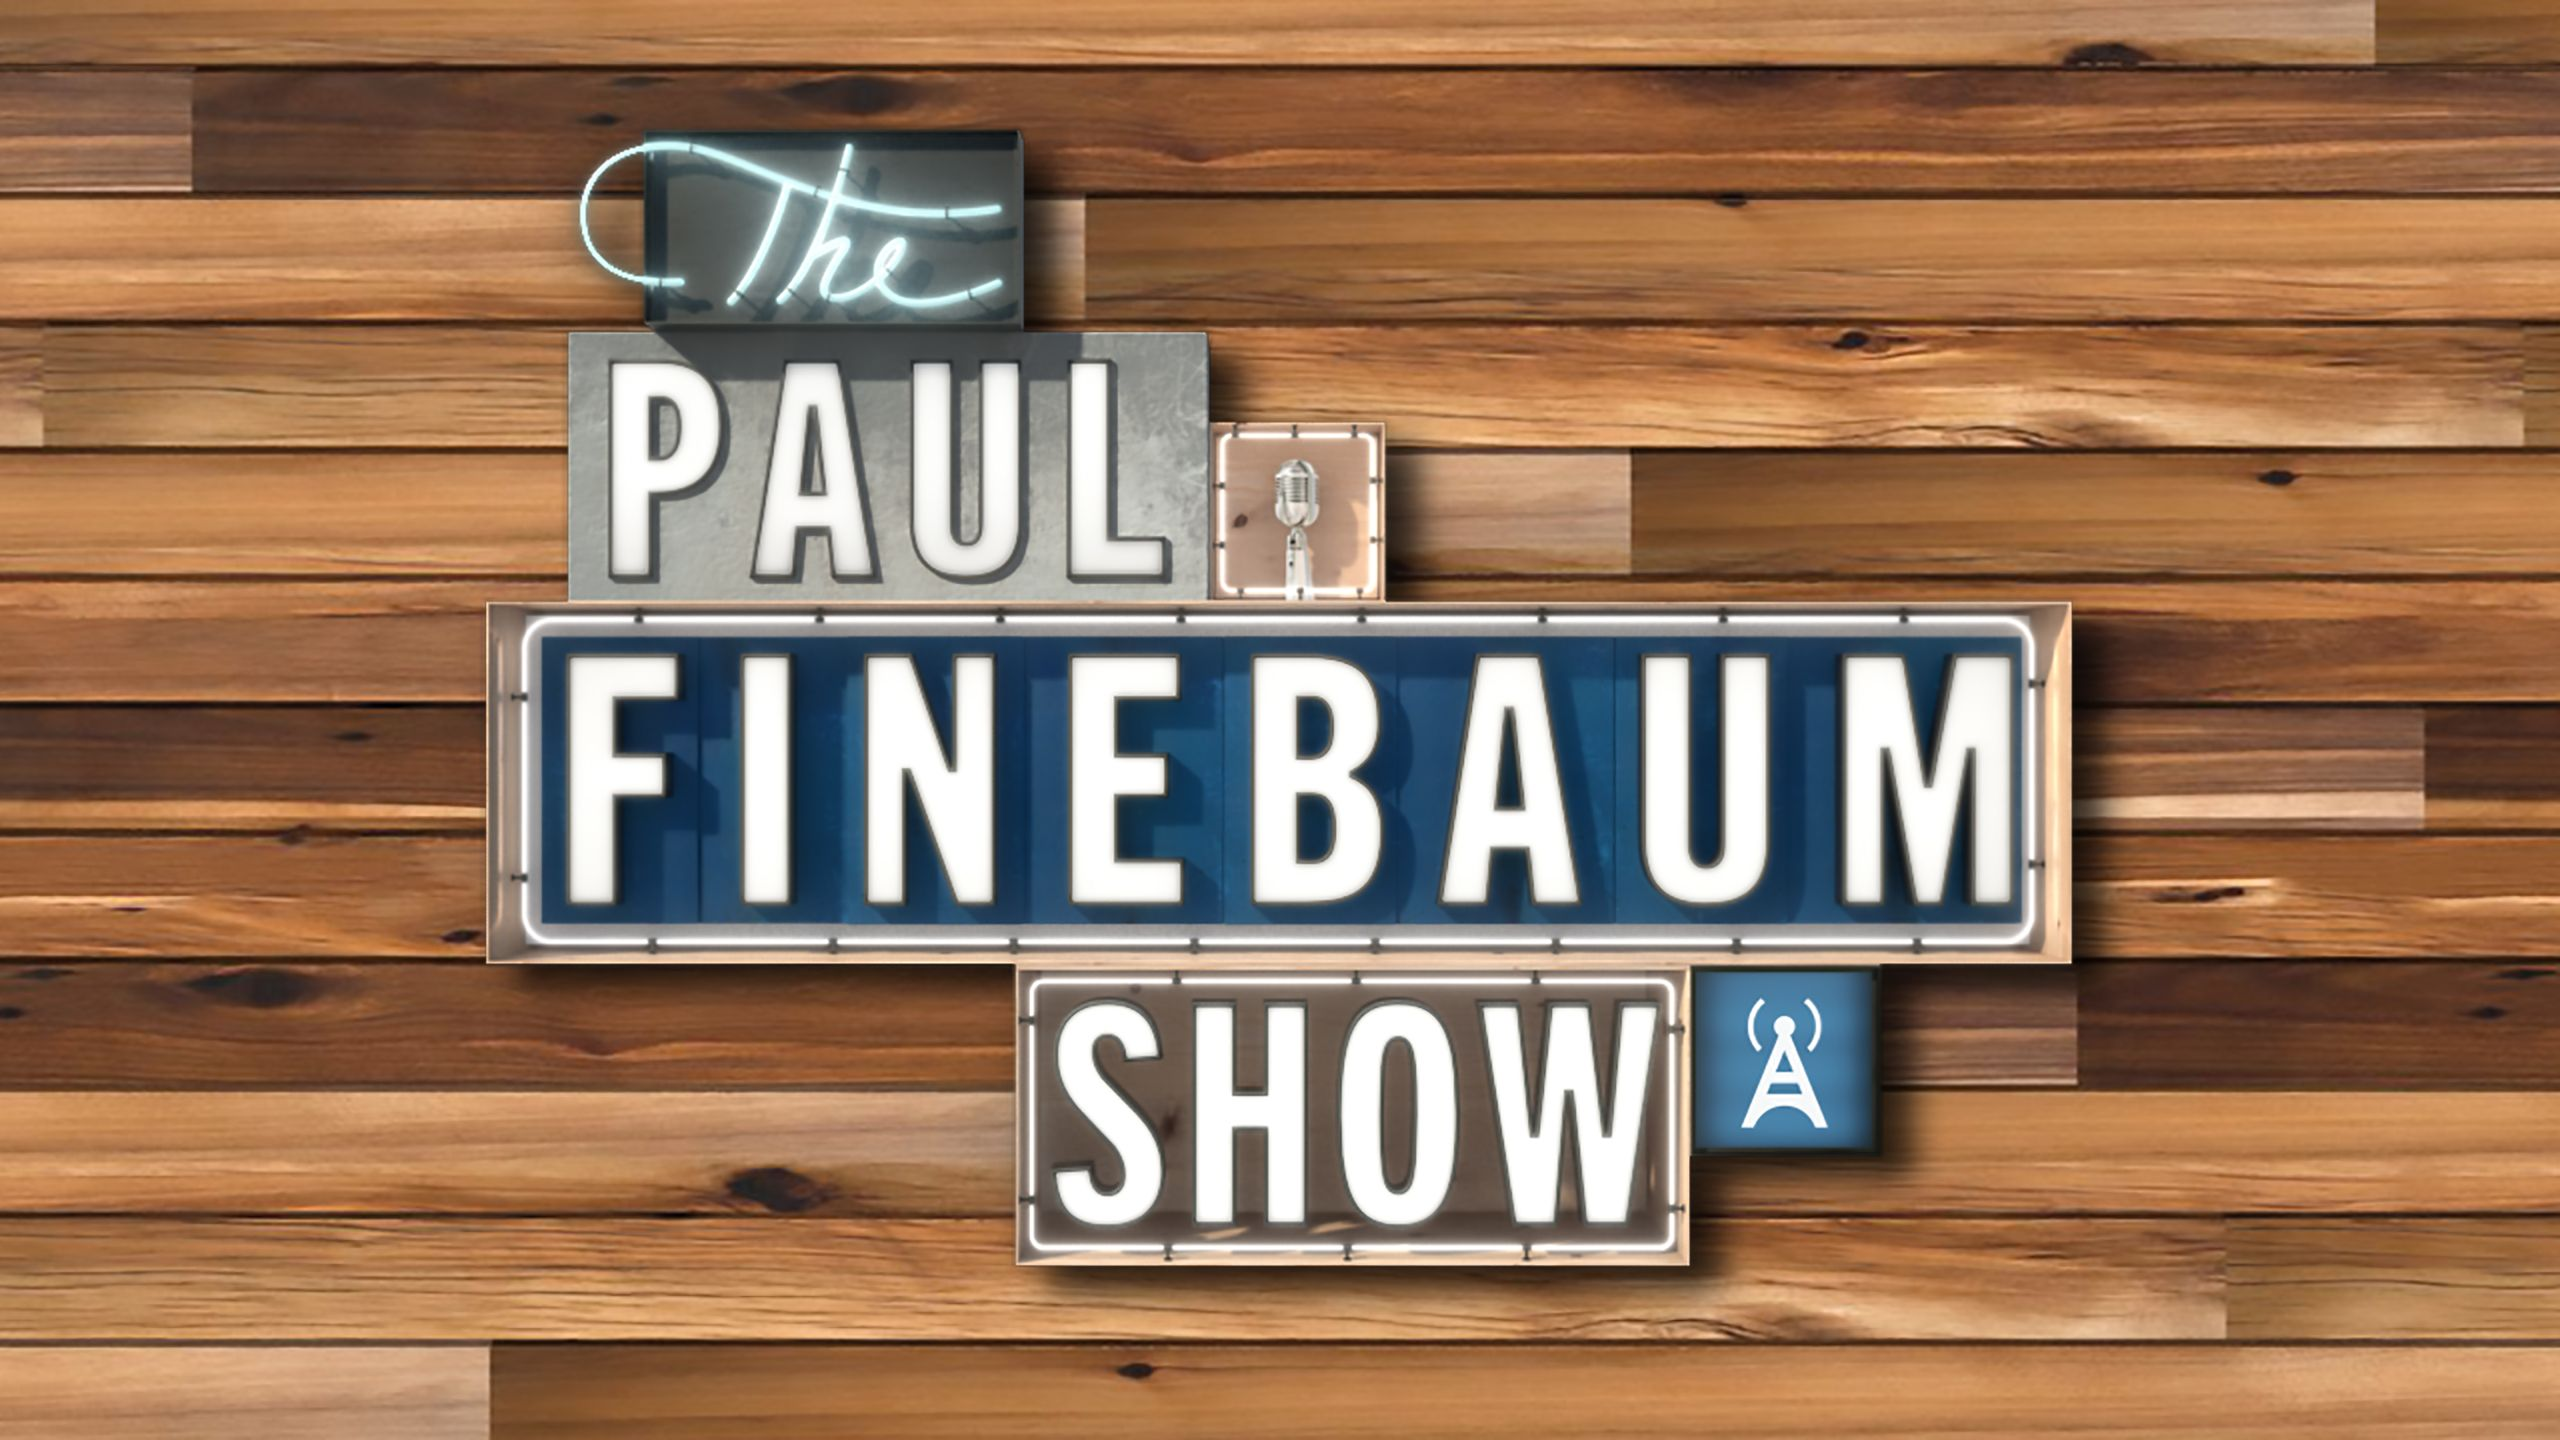 Fri, 2/23 - The Paul Finebaum Show